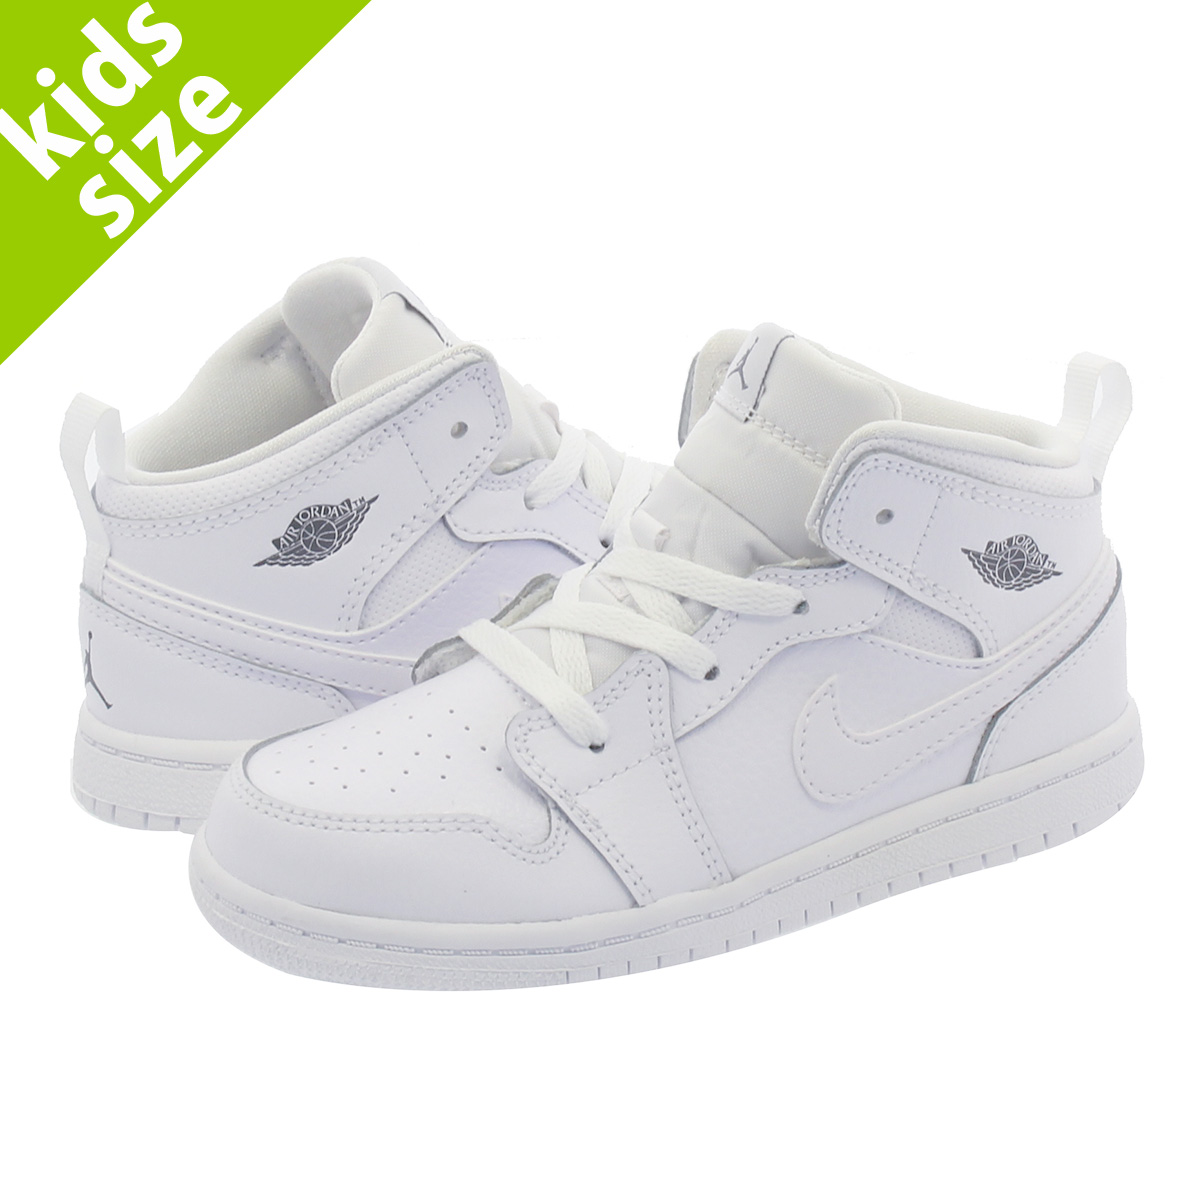 1a1920c01e NIKE AIR JORDAN 1 MID BT Nike Air Jordan 1 mid BT WHITE/COOL GREY ...